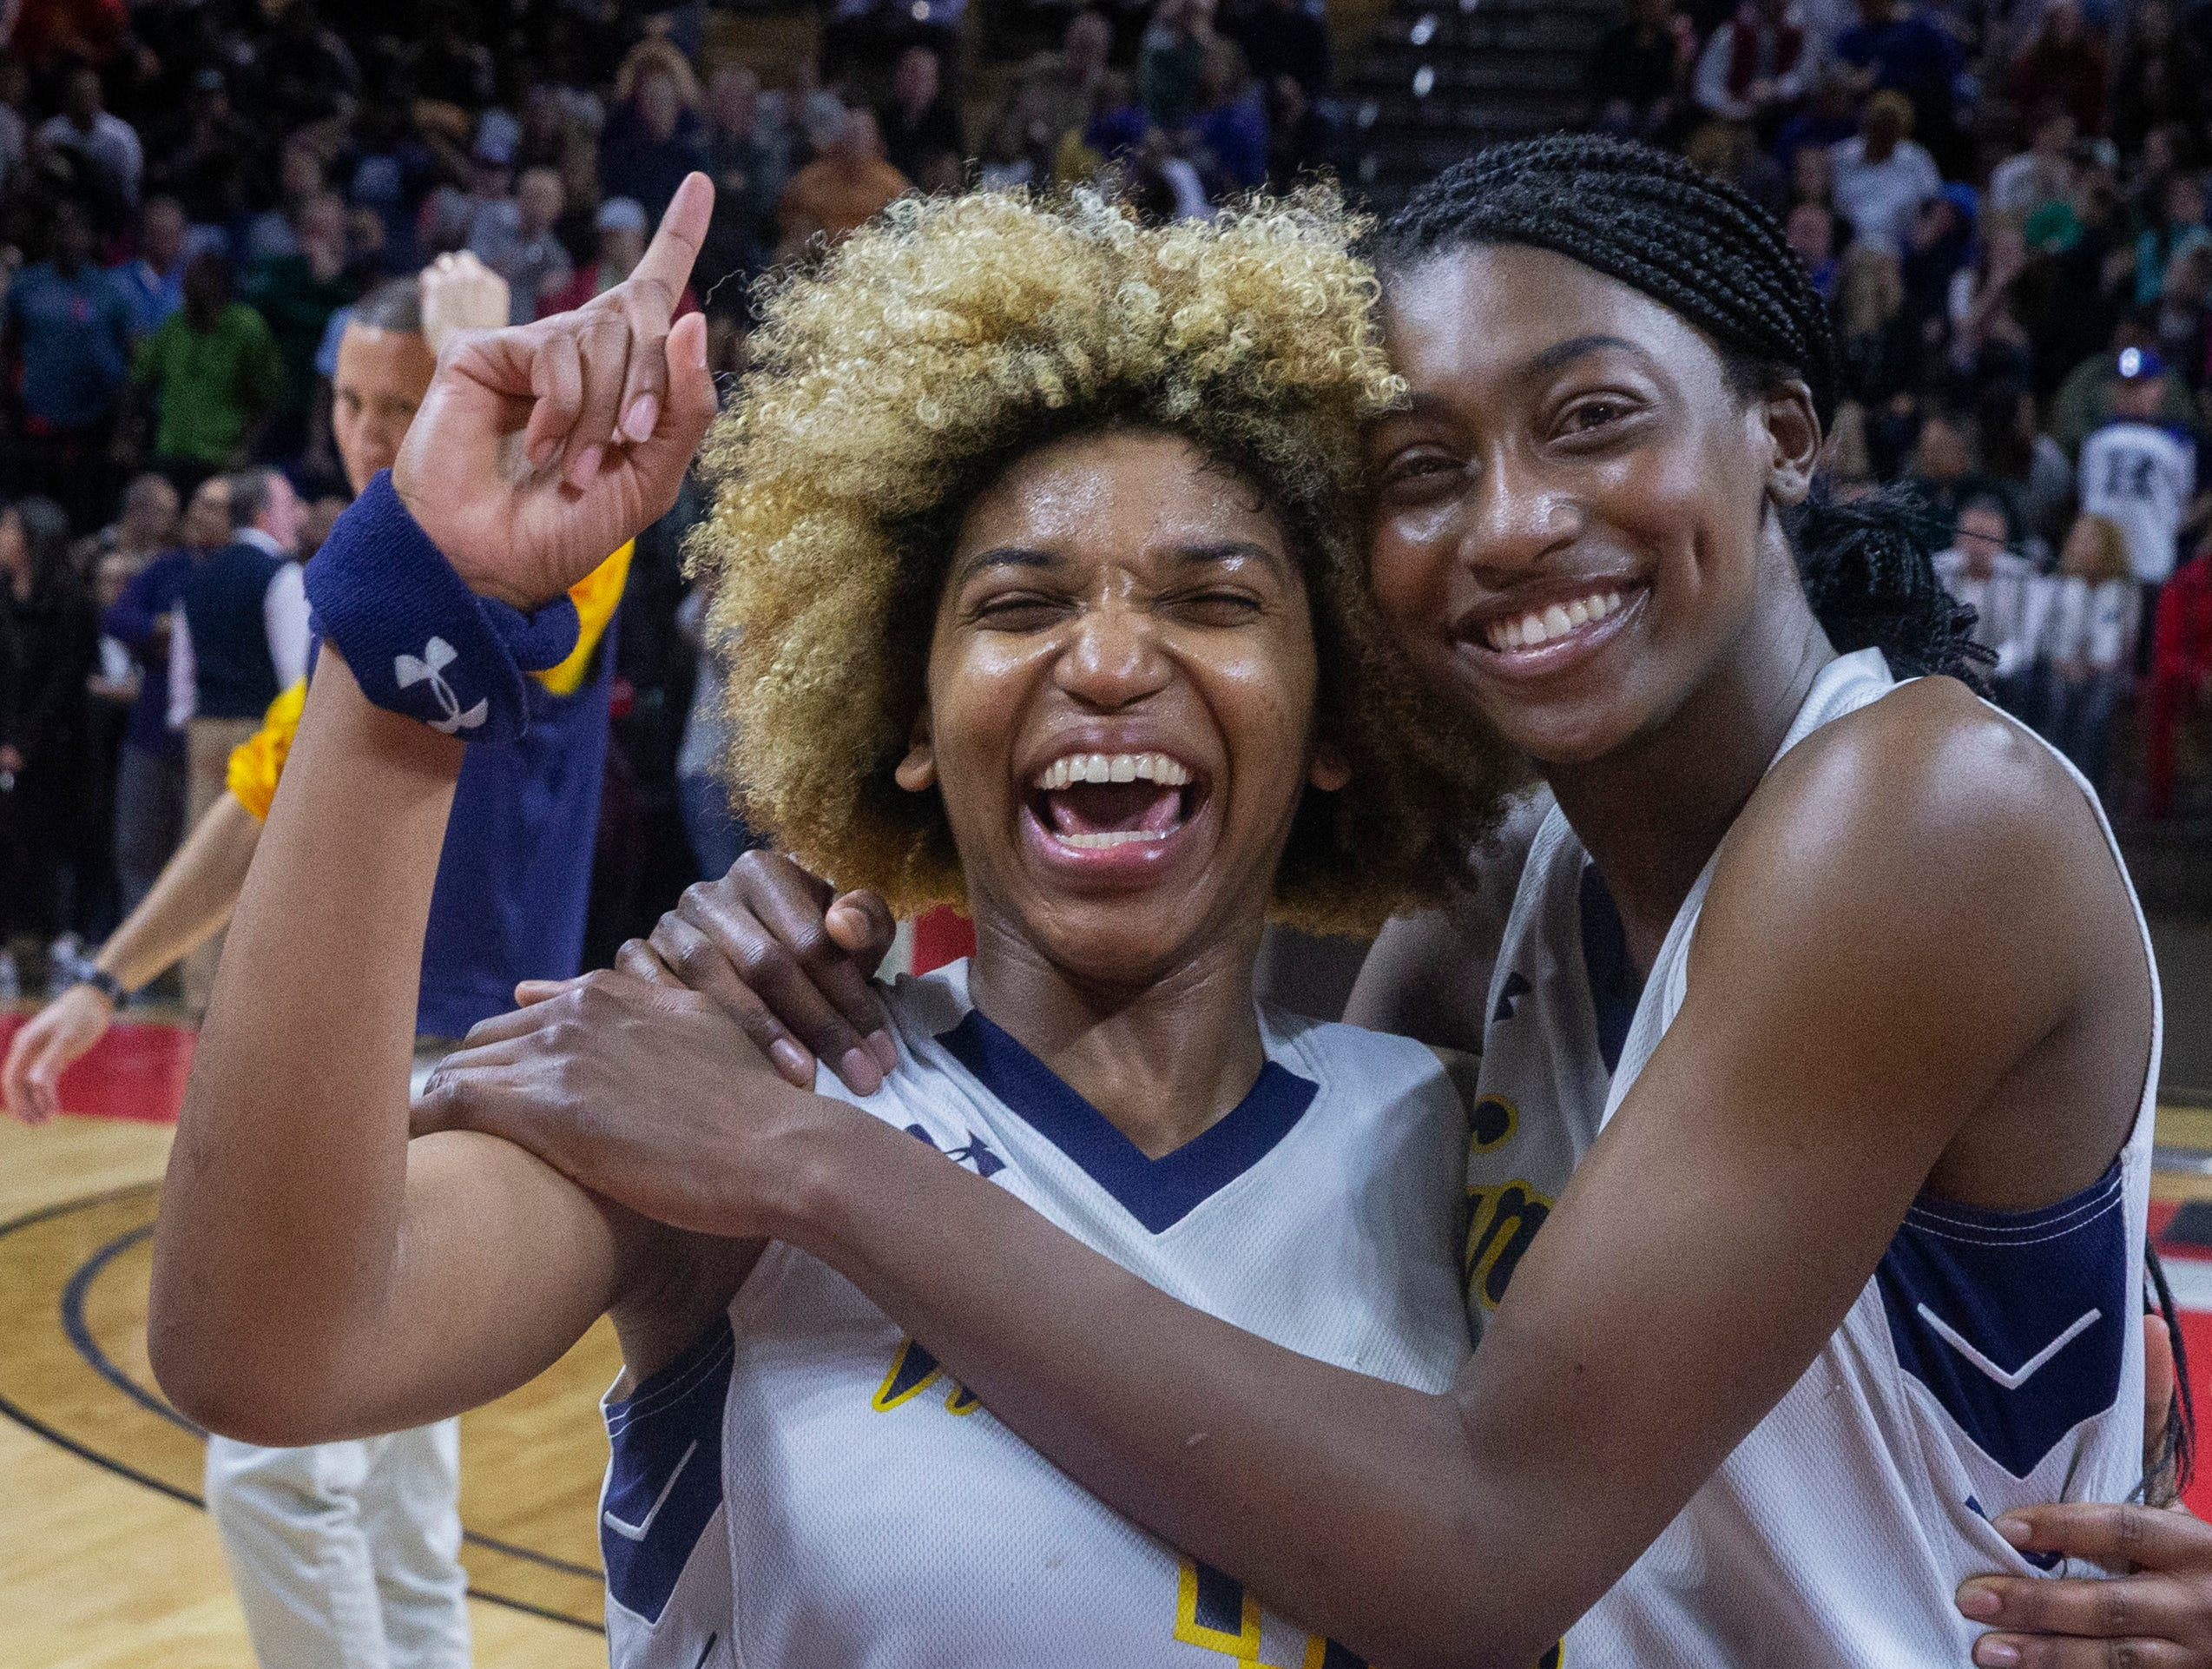 Franklin seniors Tiana Jackson and Diamond Miller celebrate their team's championship. Franklin girls basketball vs Saddle River Day in 2019 NJSIAA Tournament of Champions final in Piscataway, N.J. on March 17, 2019.